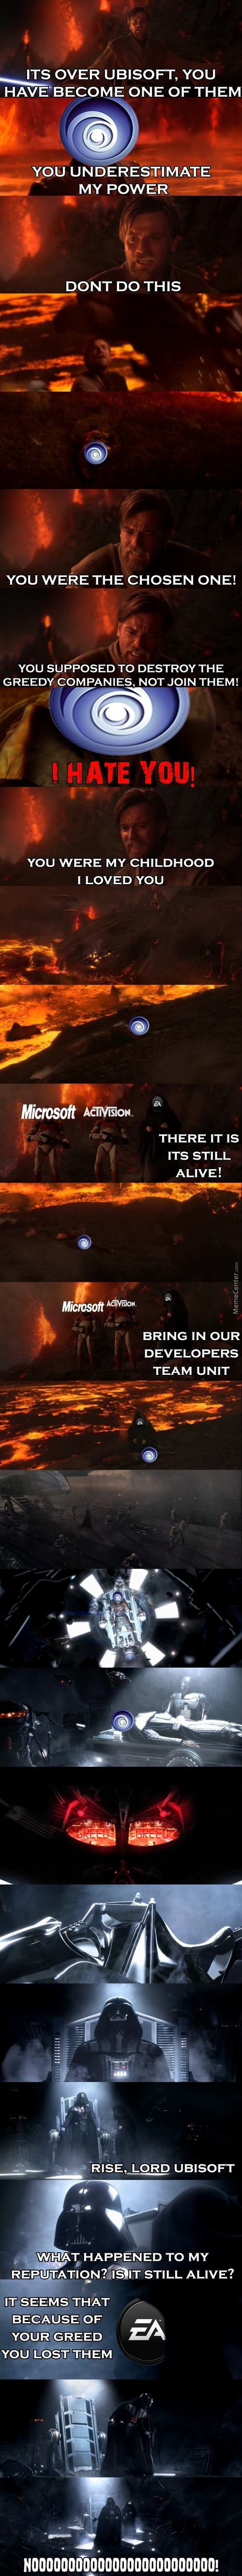 Game Wars: Revenge Of The Publishers